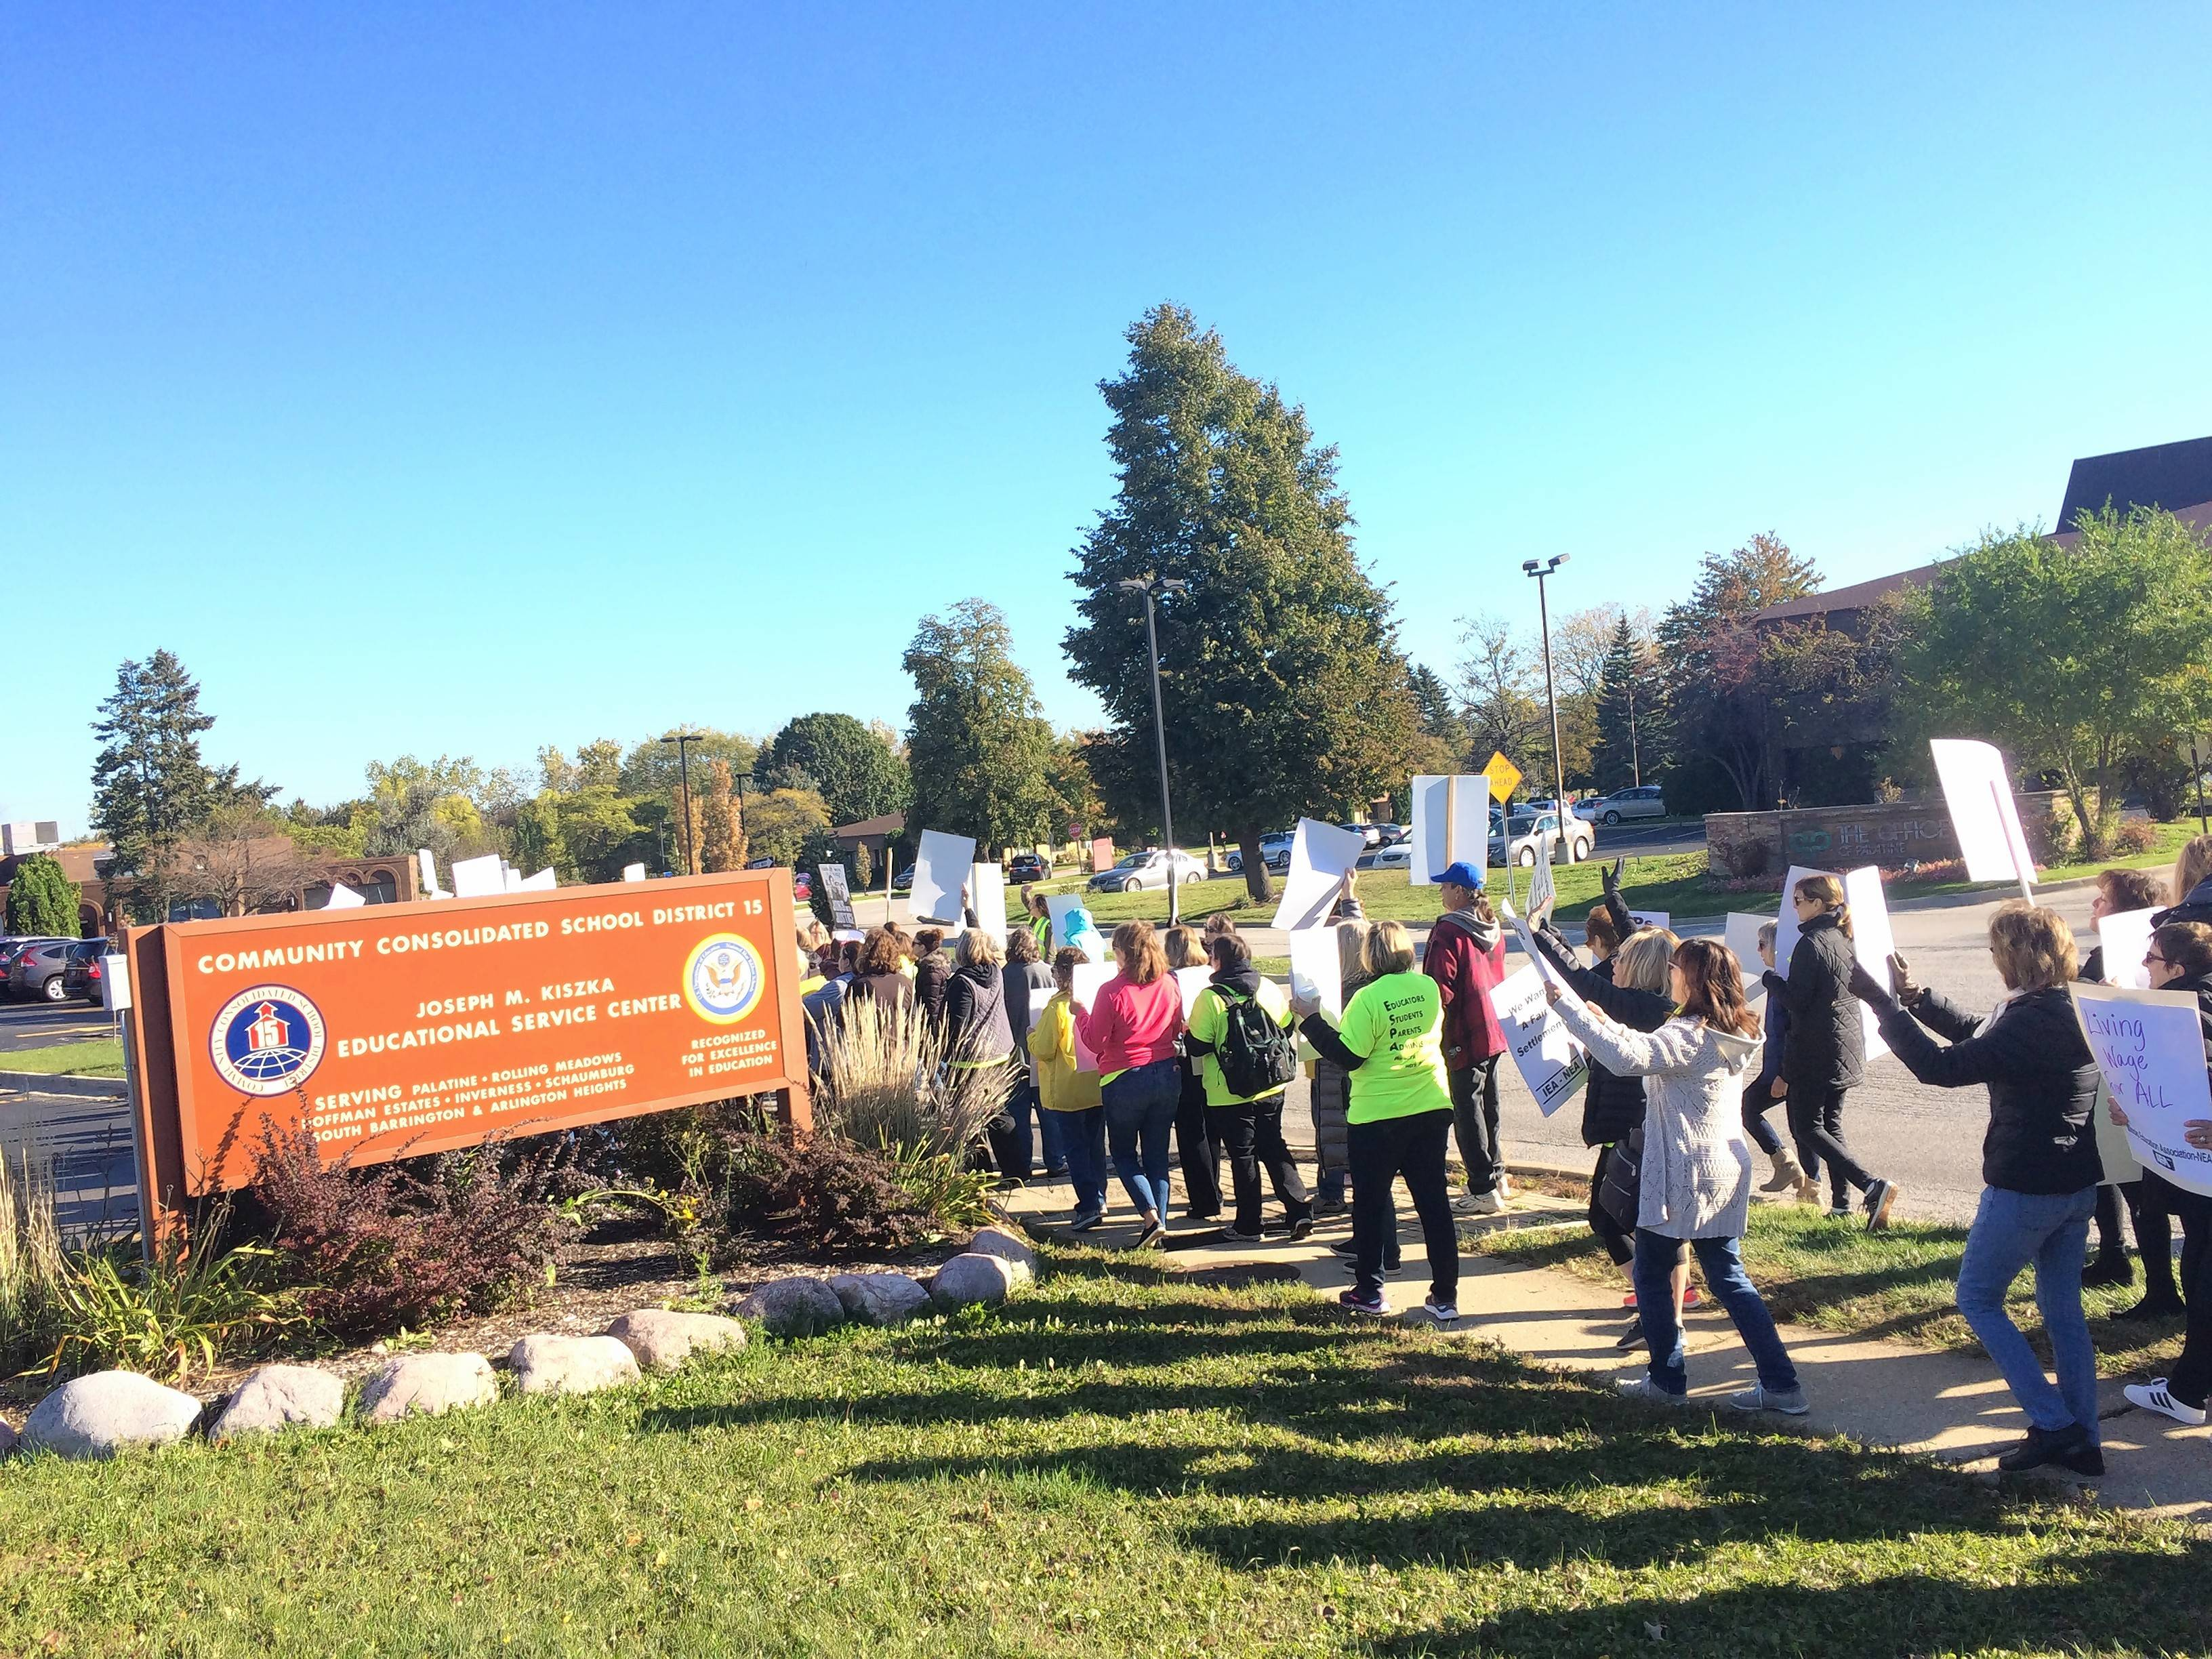 Medical coverage an issue for District 15 strikers